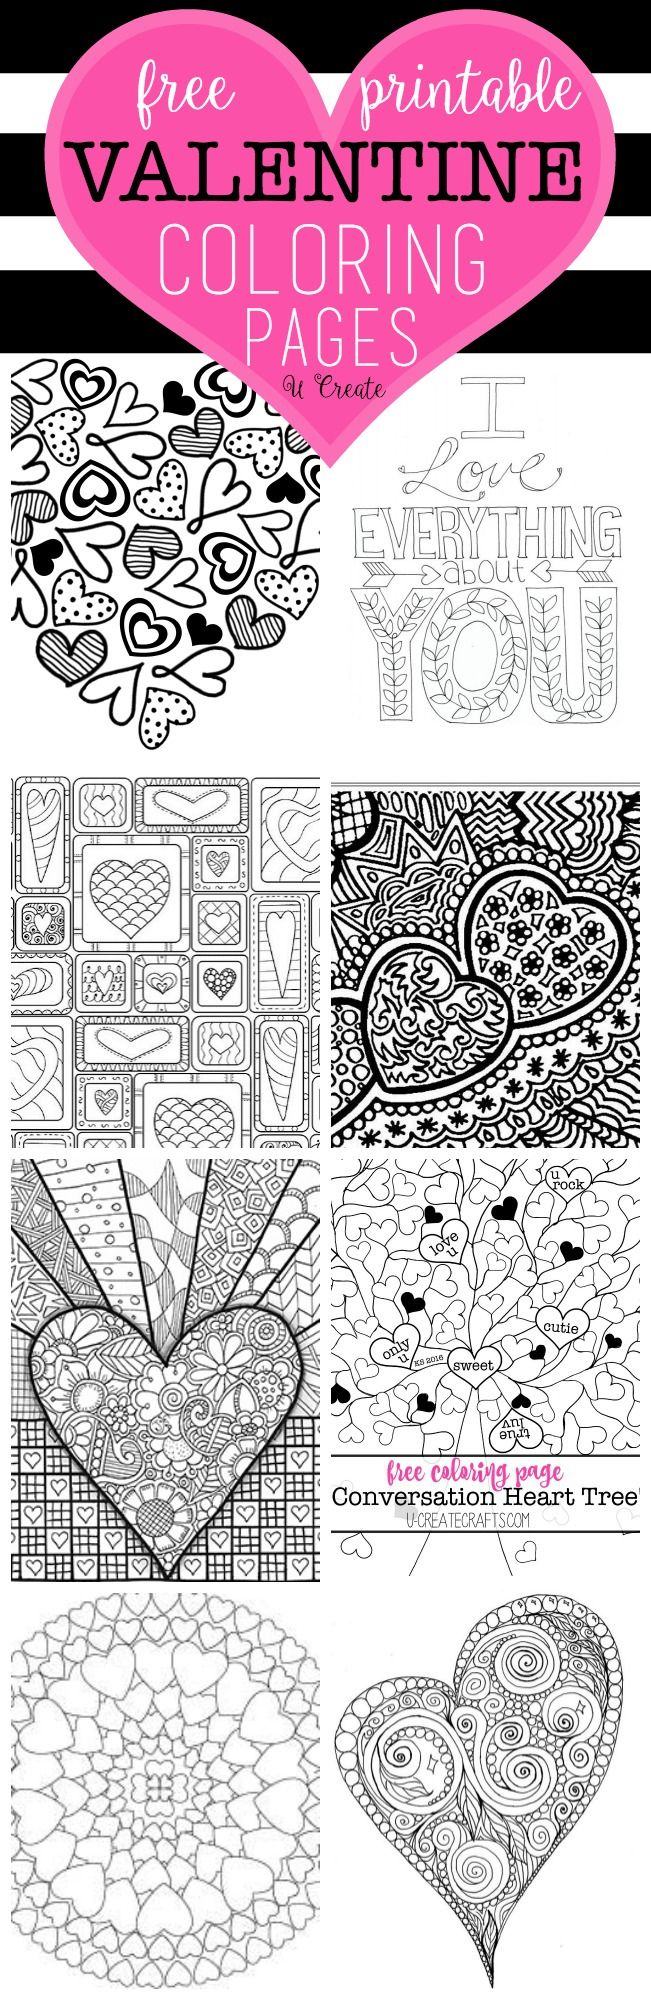 Valentine day butterfly coloring pages - Free Valentine Coloring Pages